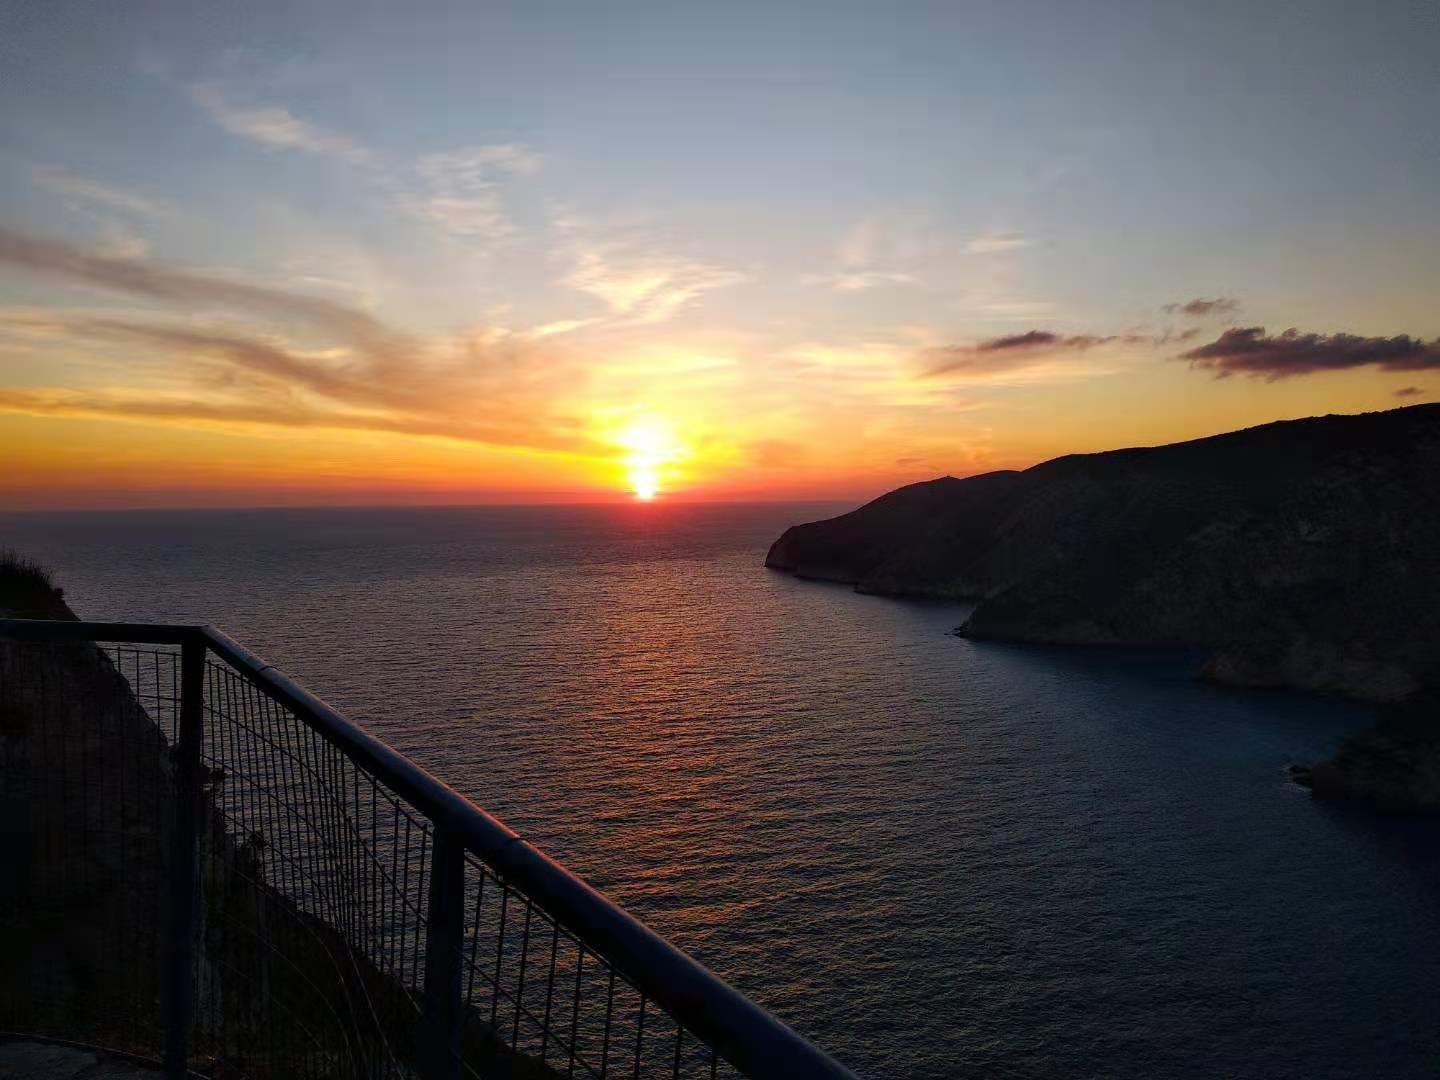 Dali Private Tours Sunset Trip Photo Gallery | Dali Private Tours